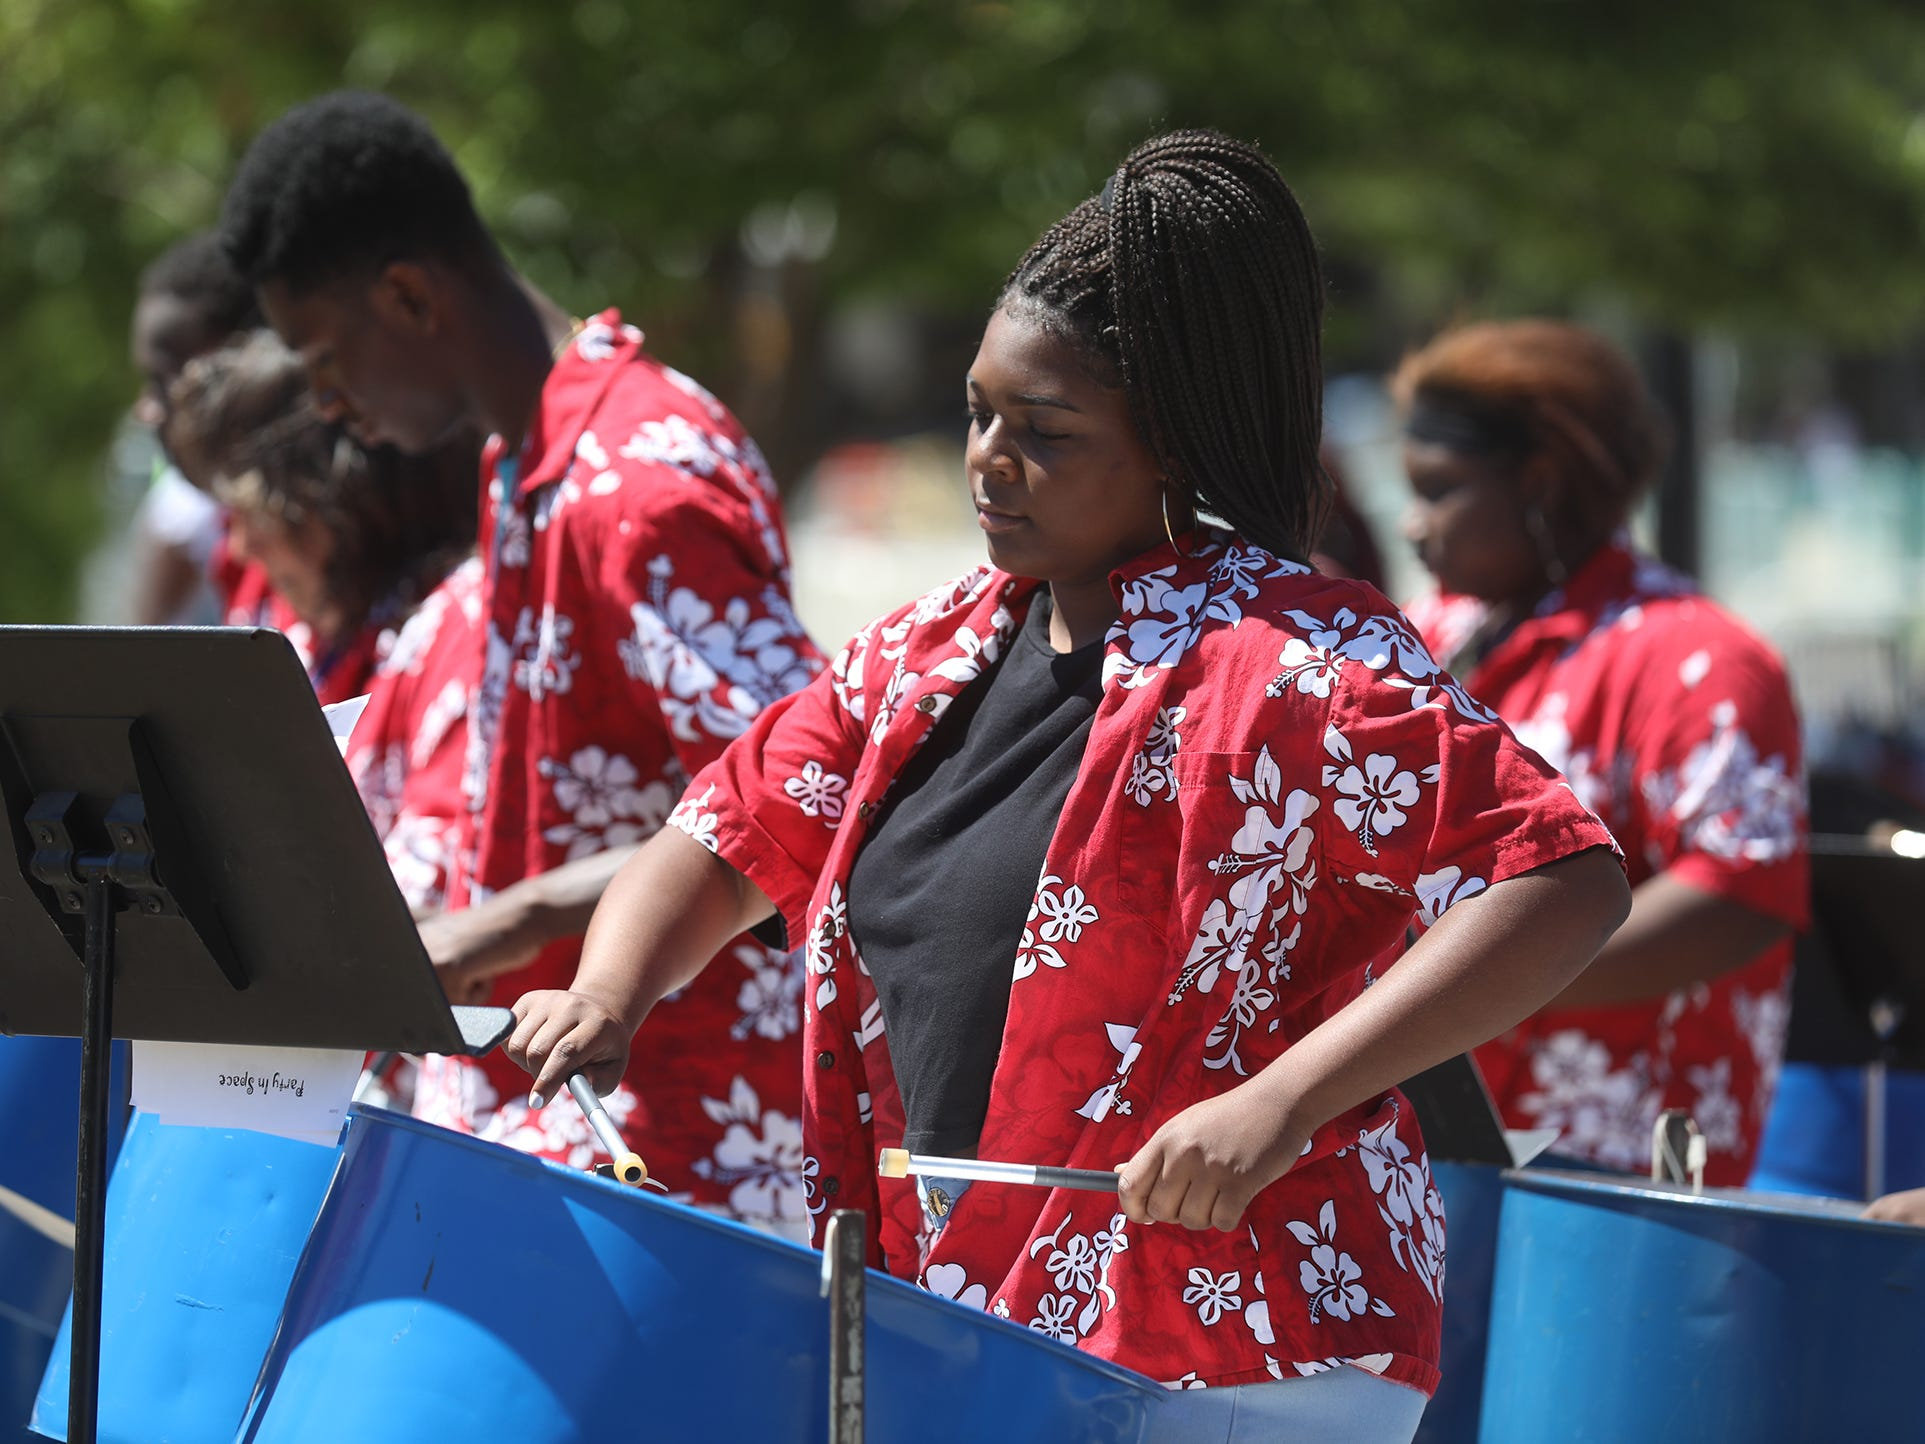 Skyasia Wright joins other students in the Rochester City School District Urban Steel band, plays songs at Carifest in Martin Luther King Jr. Memorial Park.